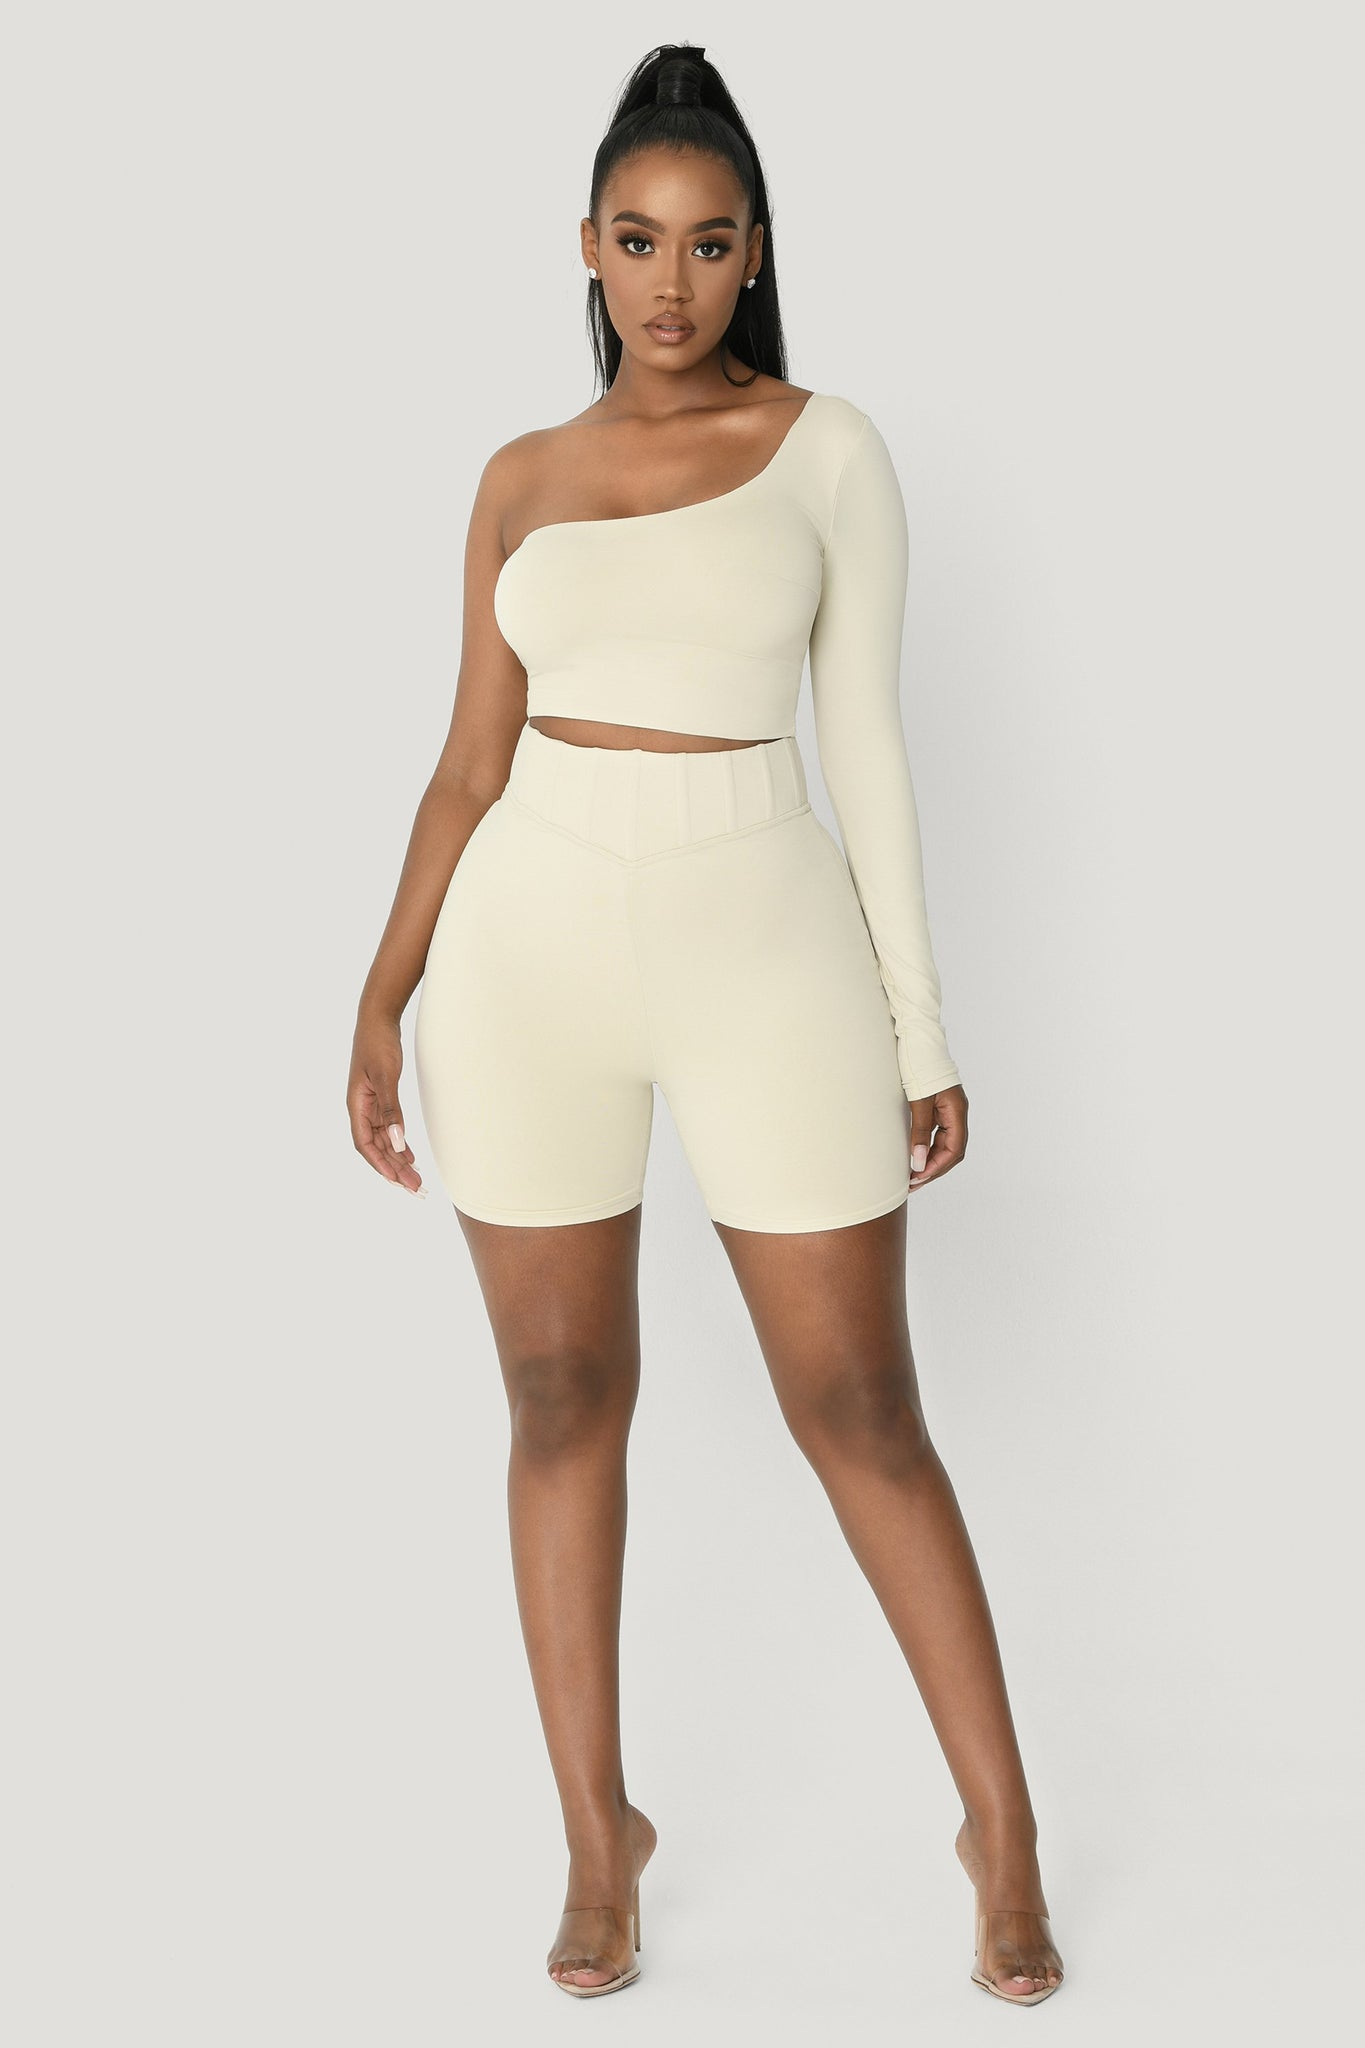 Amirah One Shoulder Crop Top - Sand - MESHKI